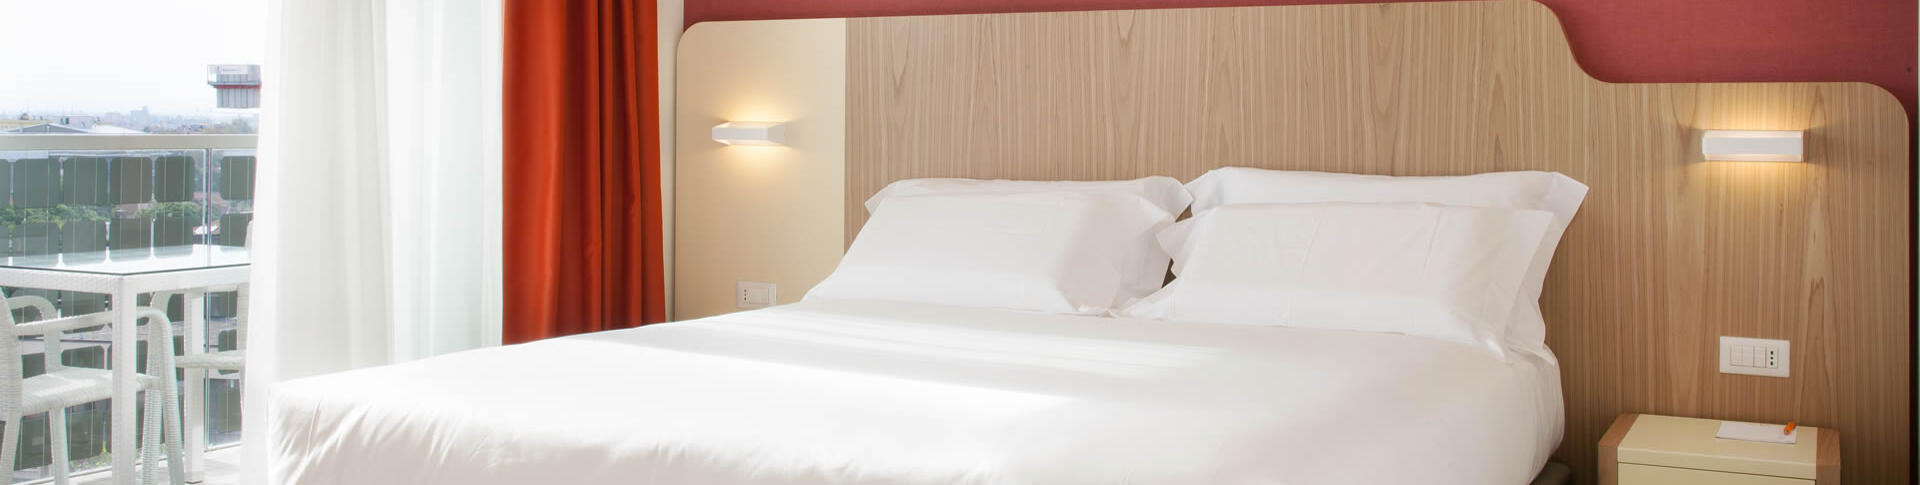 ariahotel fr chambre-quality 013